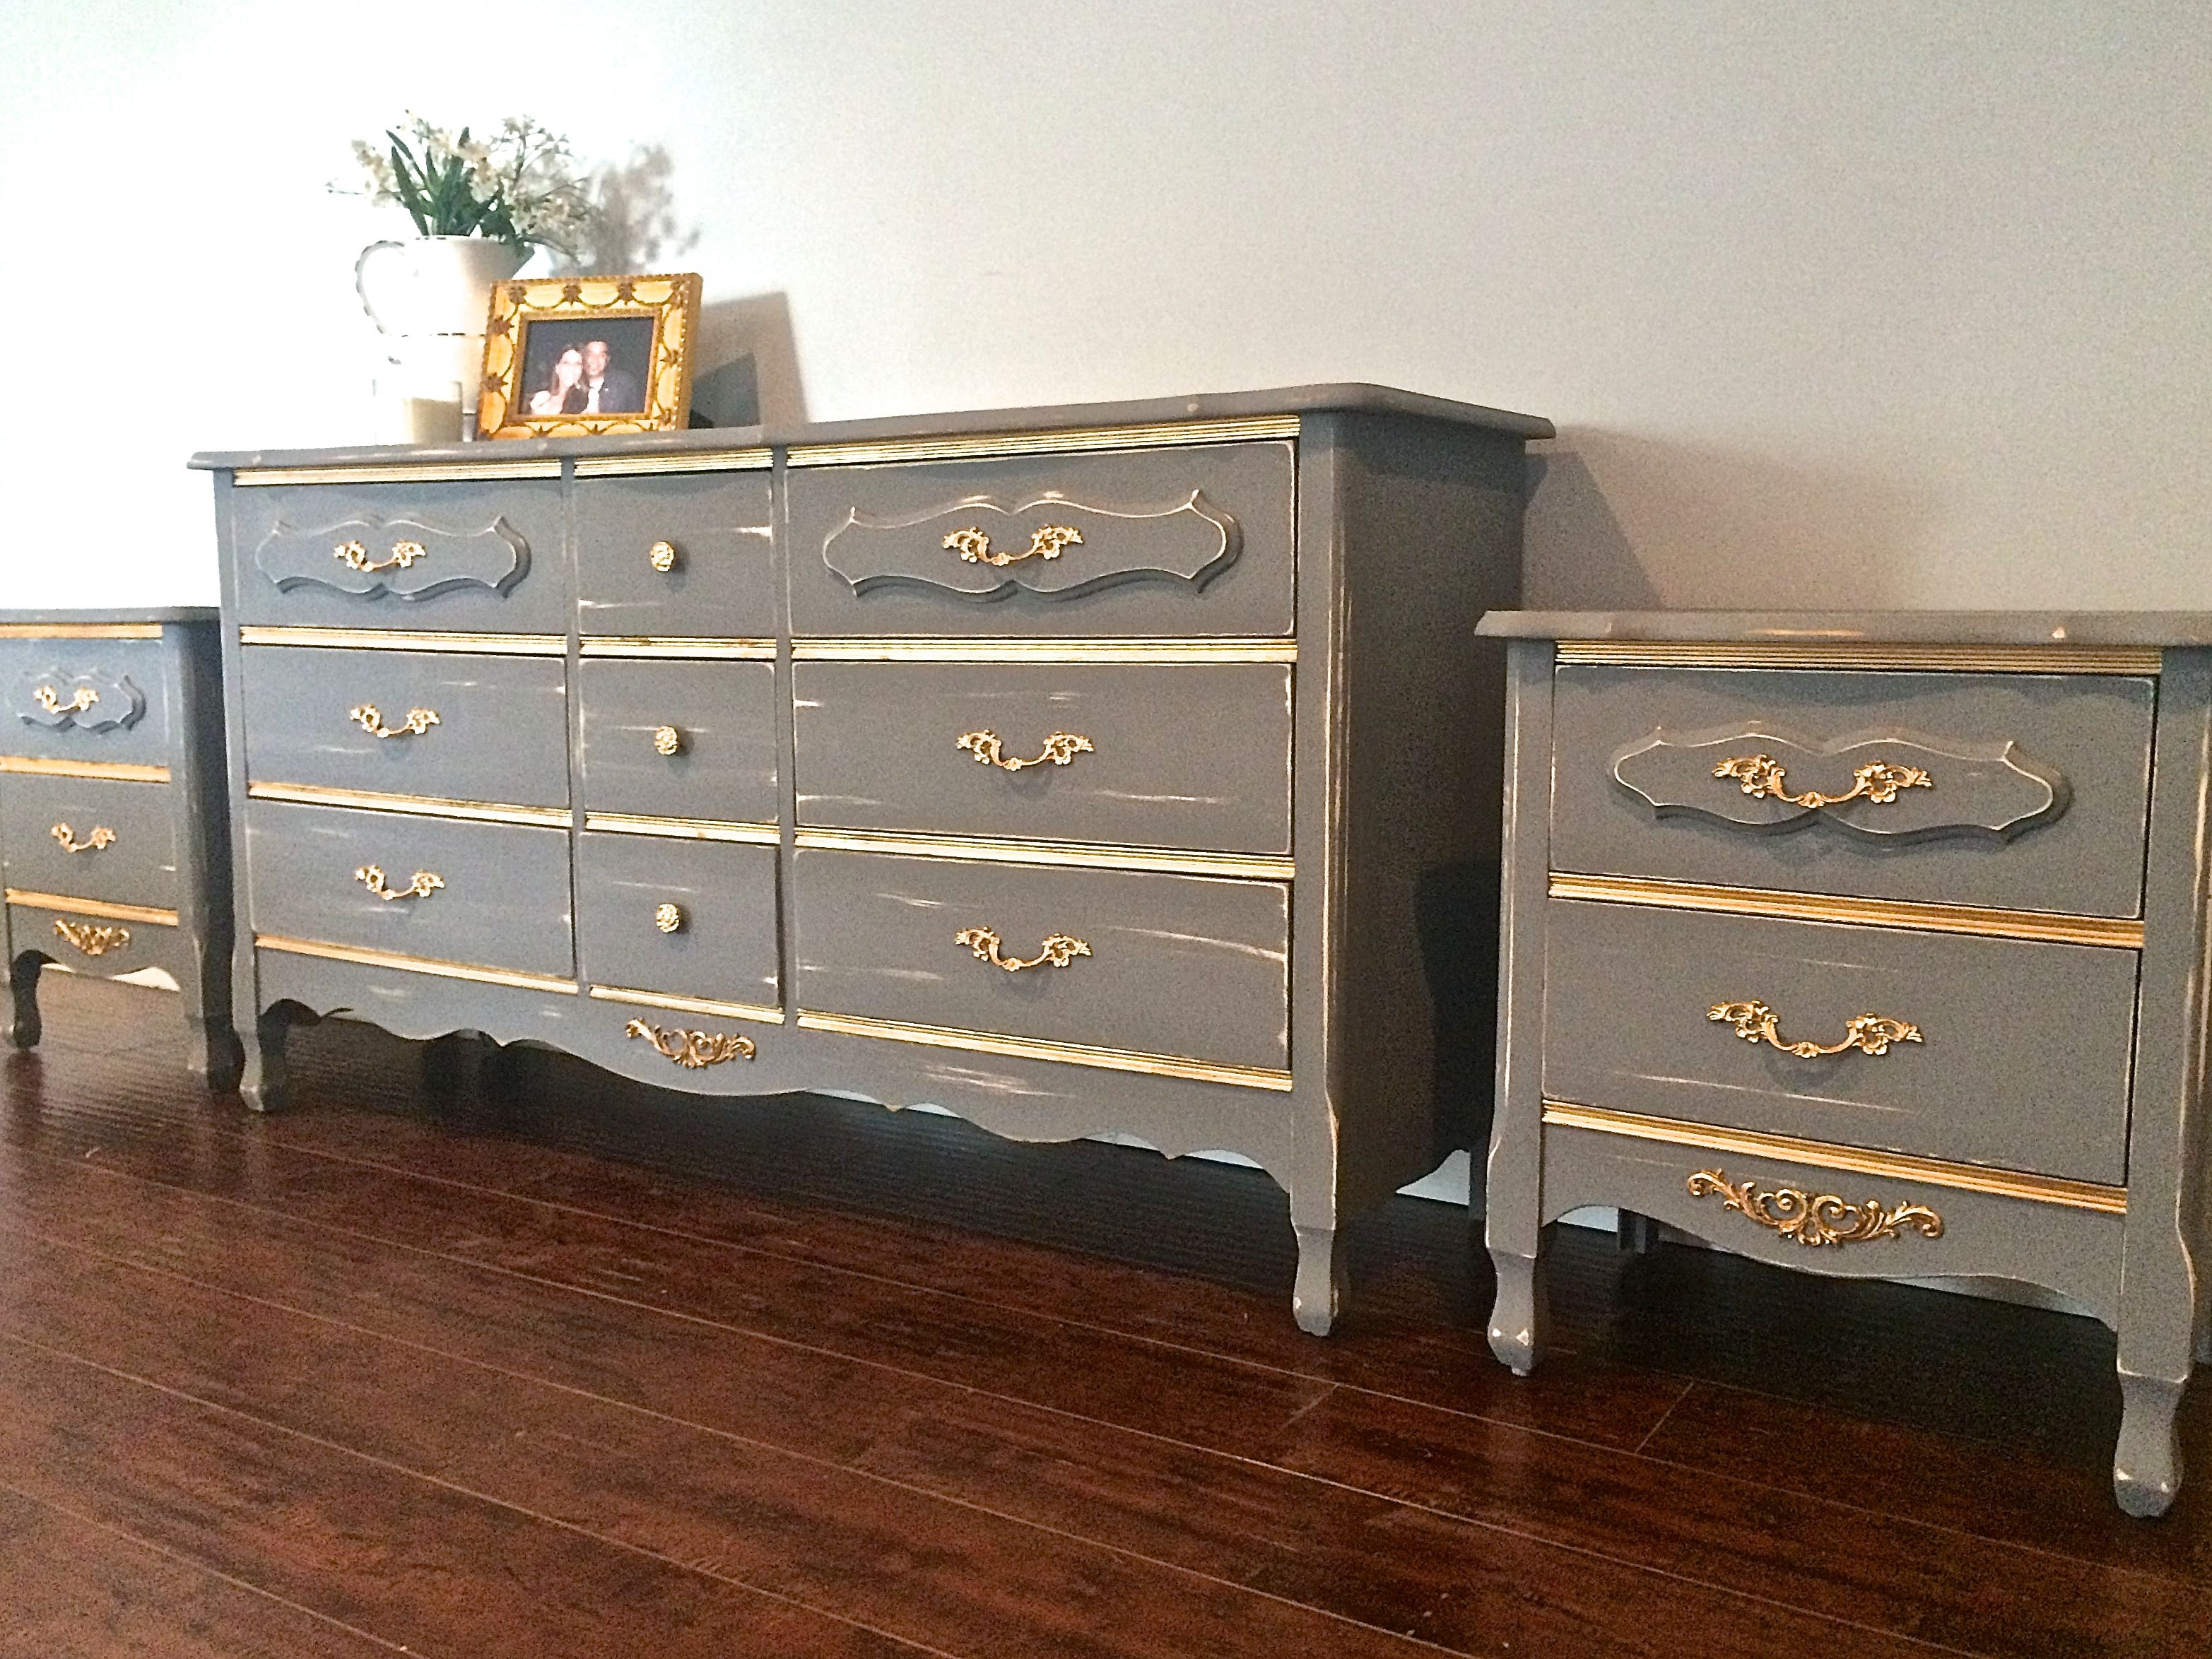 Shabby Chic Vintage Grey Gold Bedroom Set 9 Drawer Dresser 2 Nightstands 600 Sold Grey And Gold Bedroom Selling Furniture Shabby Chic [ 2348 x 3130 Pixel ]